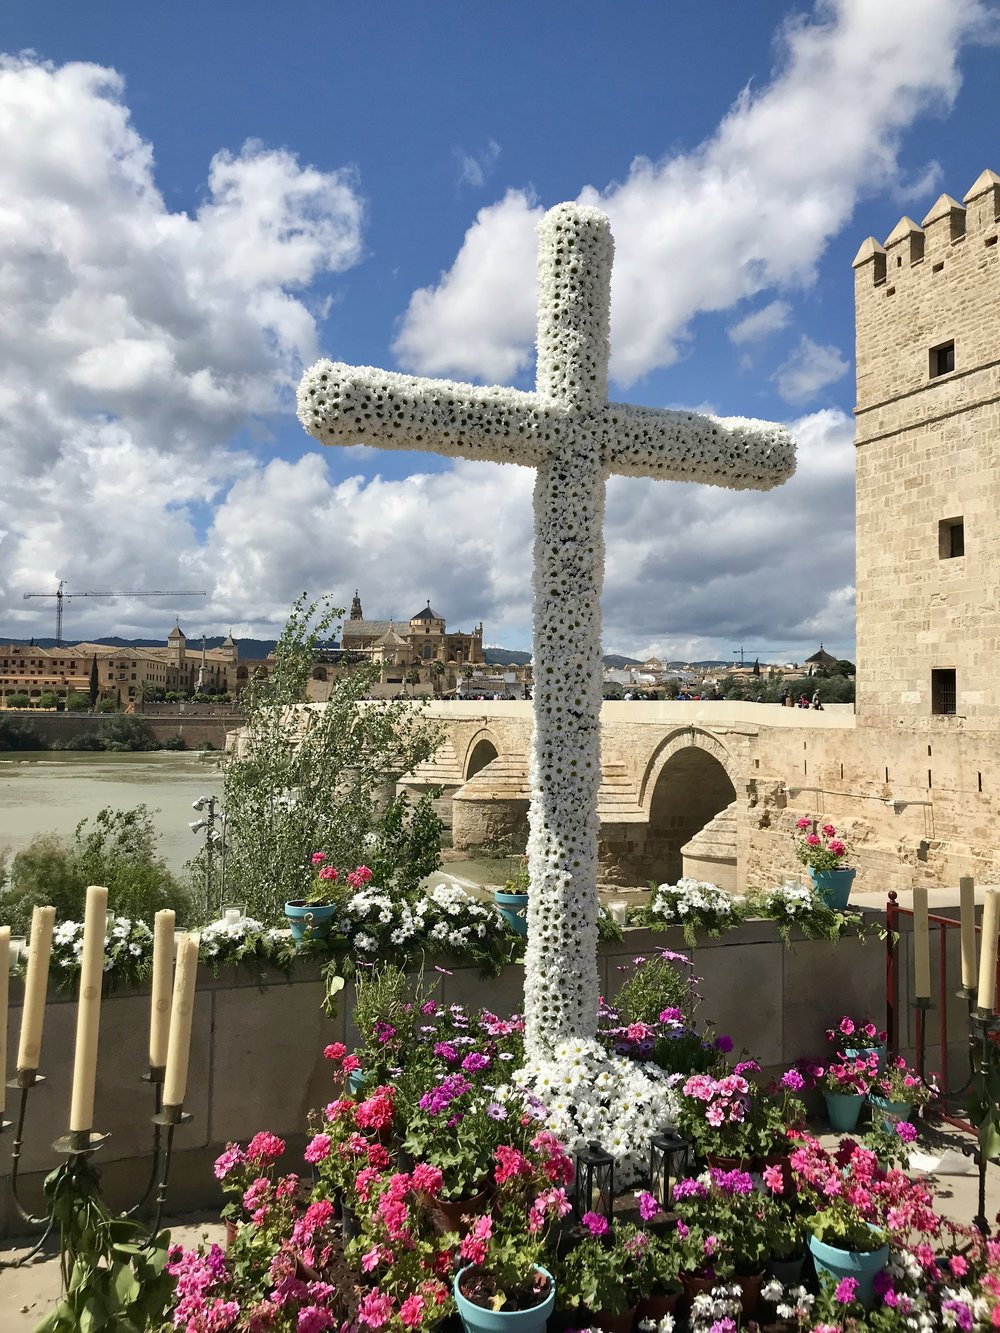 A  cruz  paired with a classic view of the Guadalquivir river, Torre de la Calahorra , and Mezquita-Catedral.